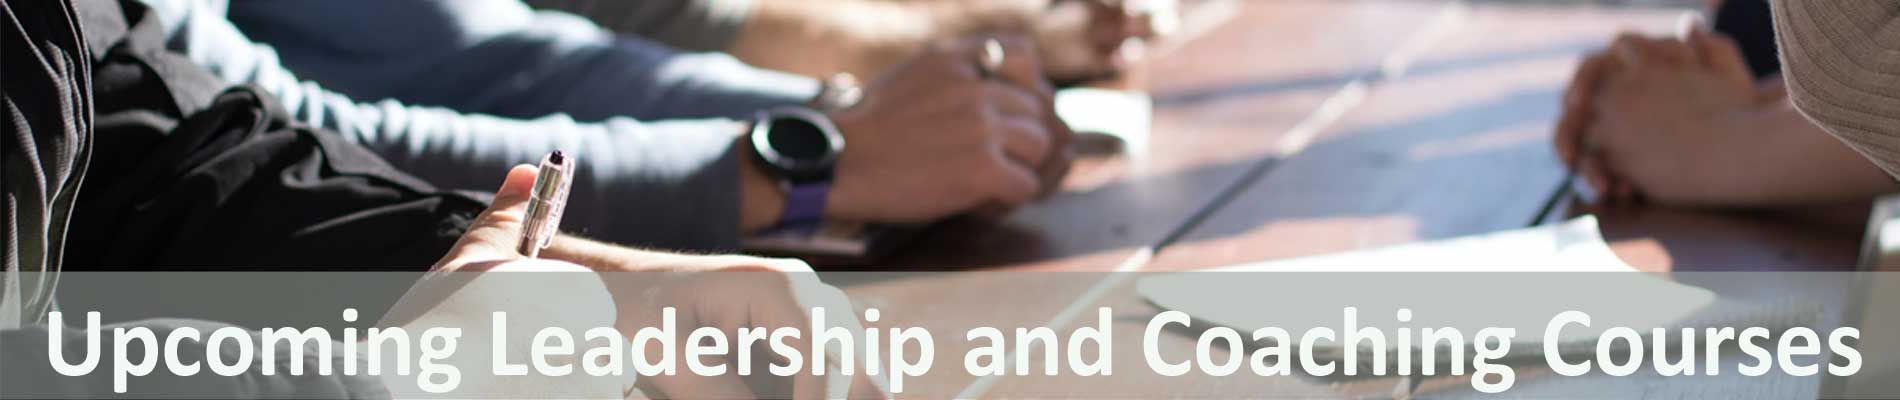 Upcoming Leadership and Coaching Courses Singapore